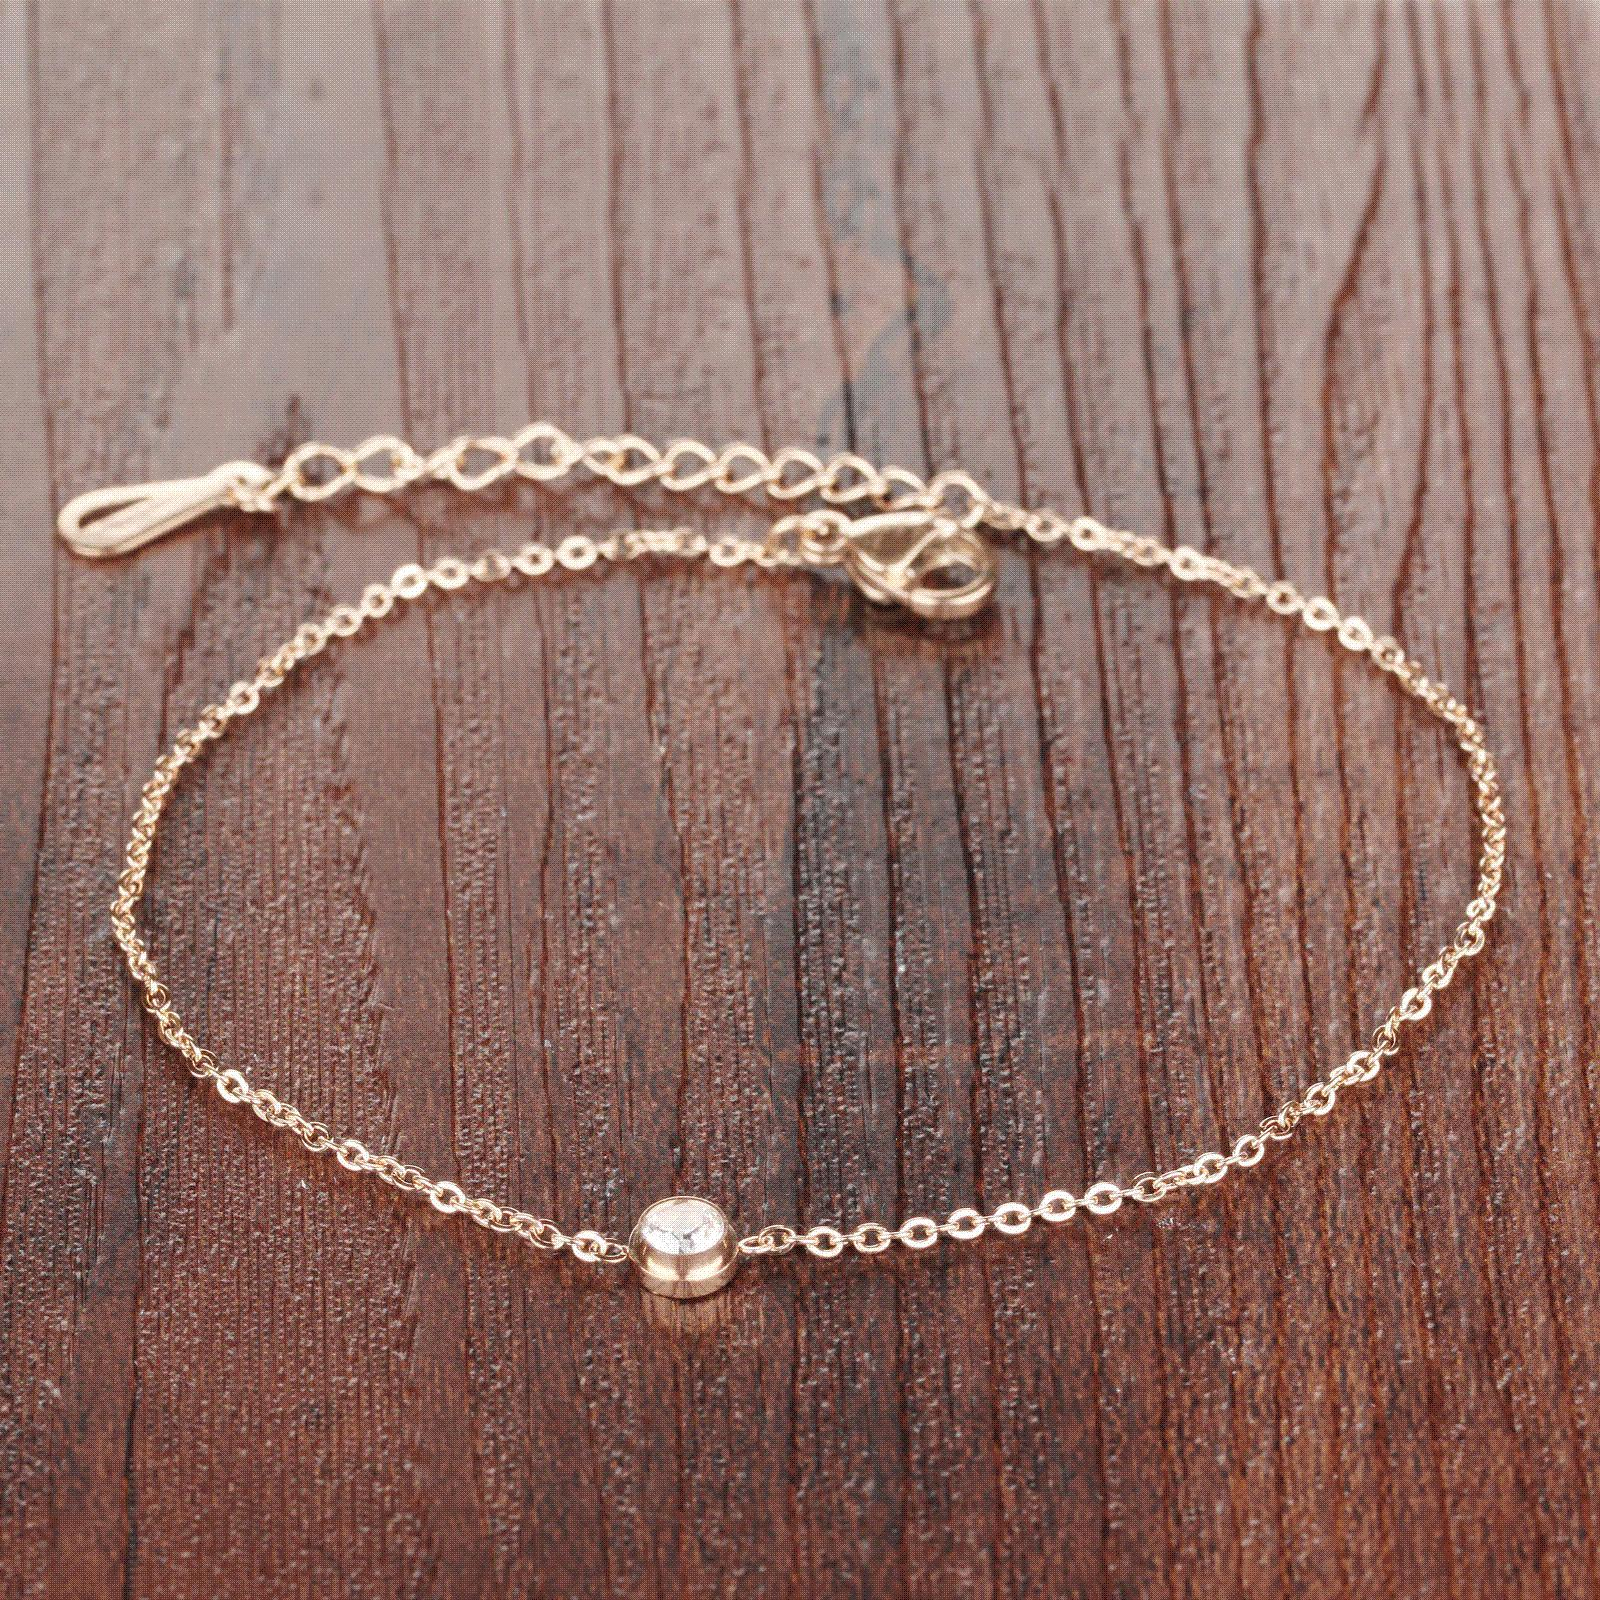 pin an anklet receive gold on sterling additional rose click silver image zirconia link a i over and amazon this affiliate the cubic is info want